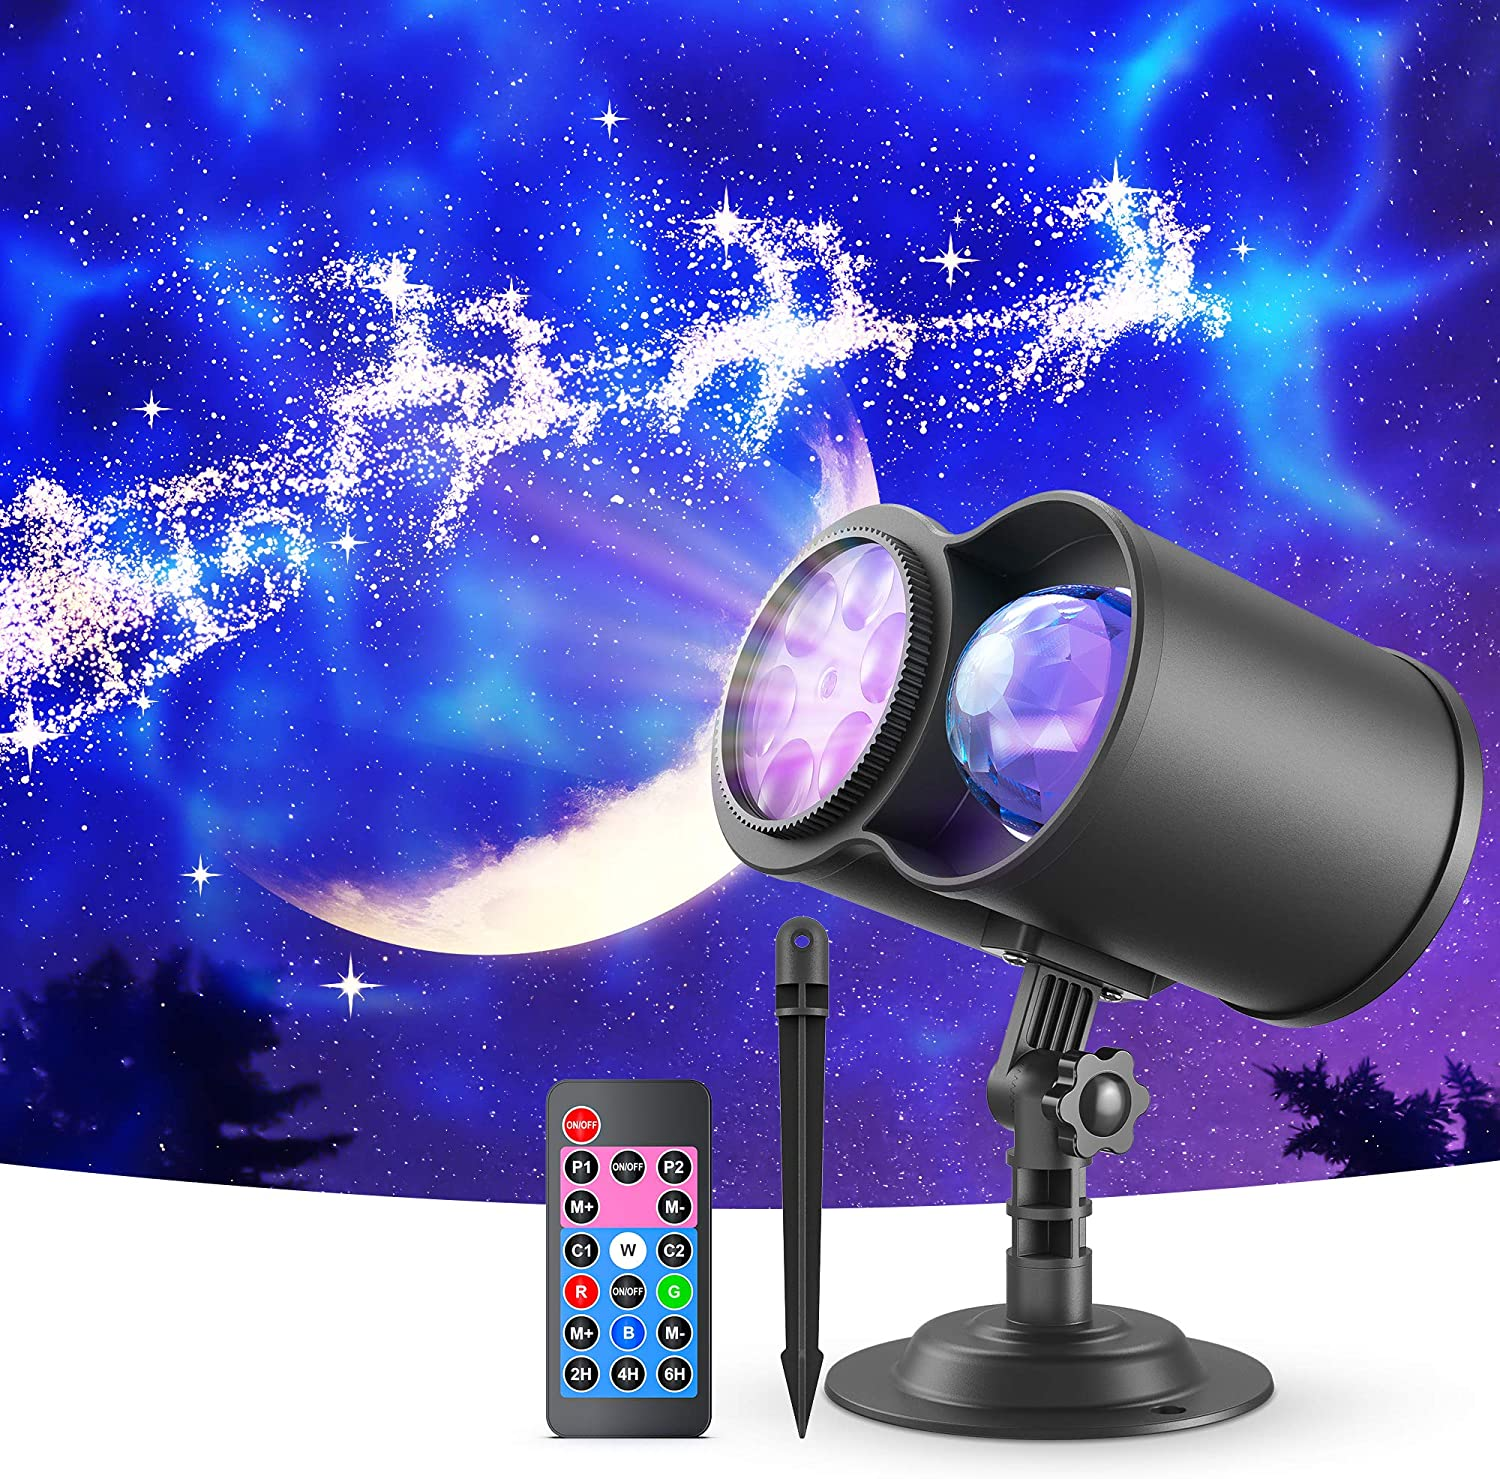 VANKYO Christmas Projector Lights Outdoor, 2-in-1 Ocean Wave LED Waterproof Projection Lights with Remote for Xmas Theme Holiday Party Decorations